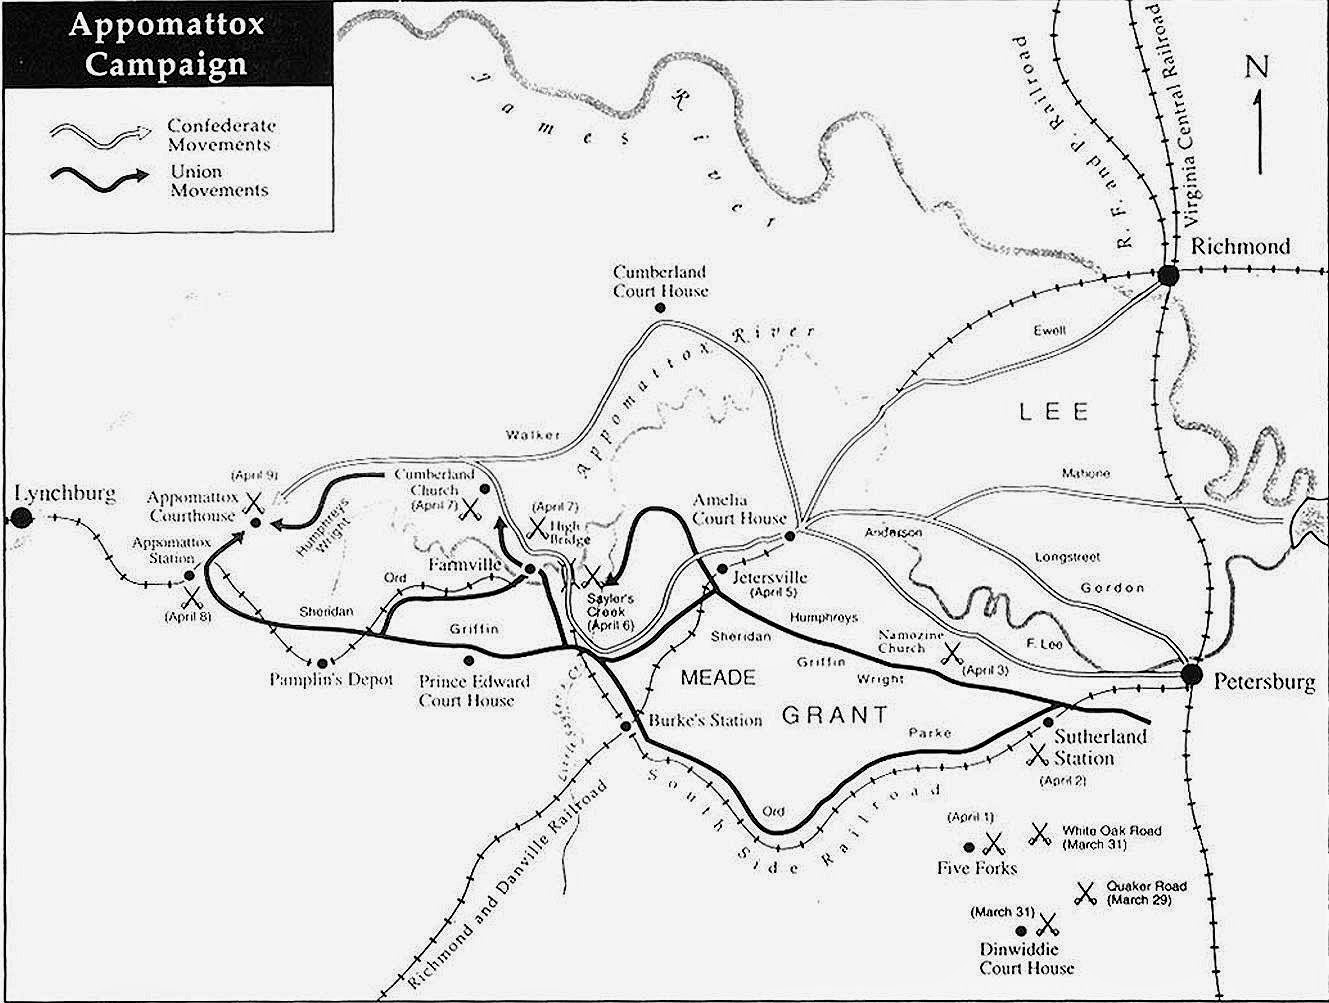 5 april 1865 a d gen lee confederates break out from amelia courthouse